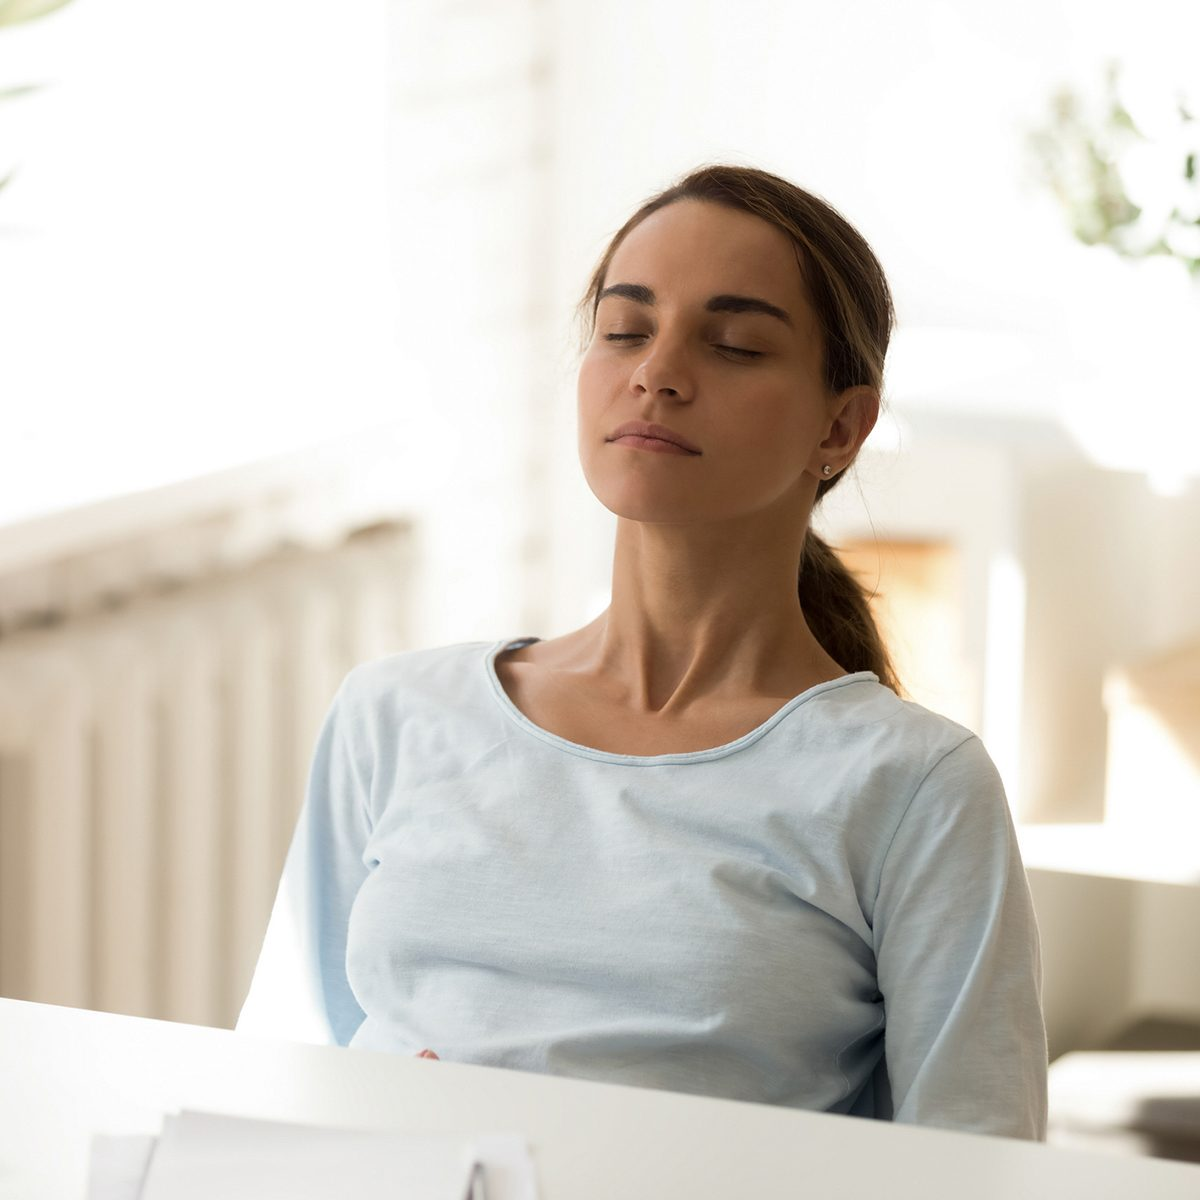 Calm stress free woman sitting at desk with eyes closed. Beautiful female relaxing on chair at work. Attractive girl lean back having rest at break time, dreaming. Harmony, stress control image concept